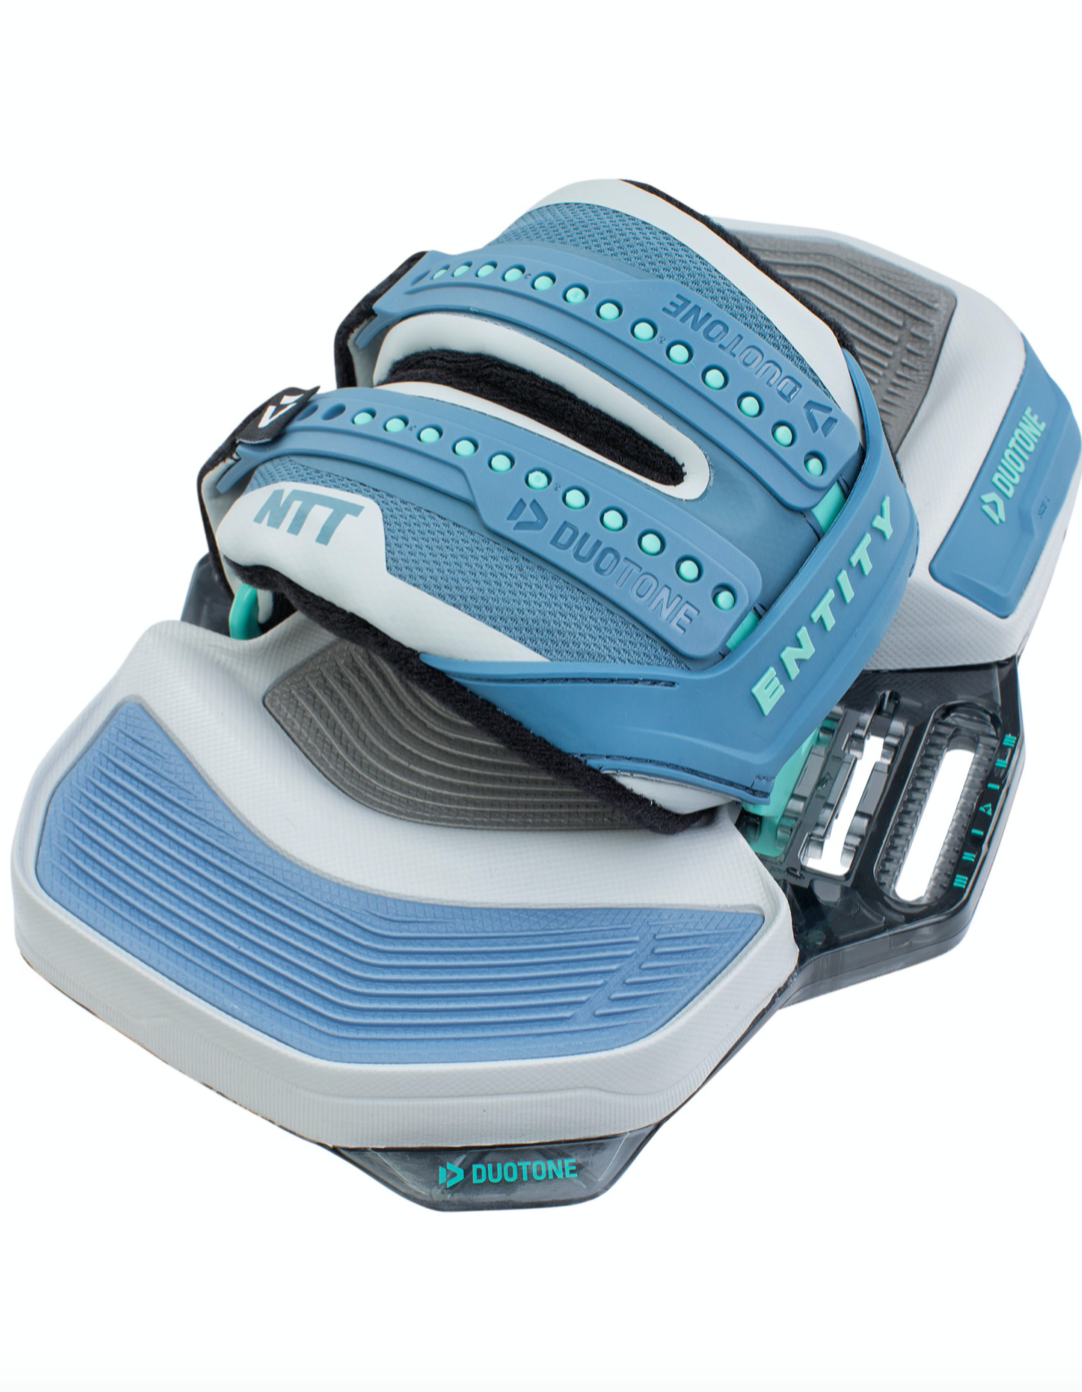 Side view of Duotone NTT footstraps 2021, new colors are grey and blue